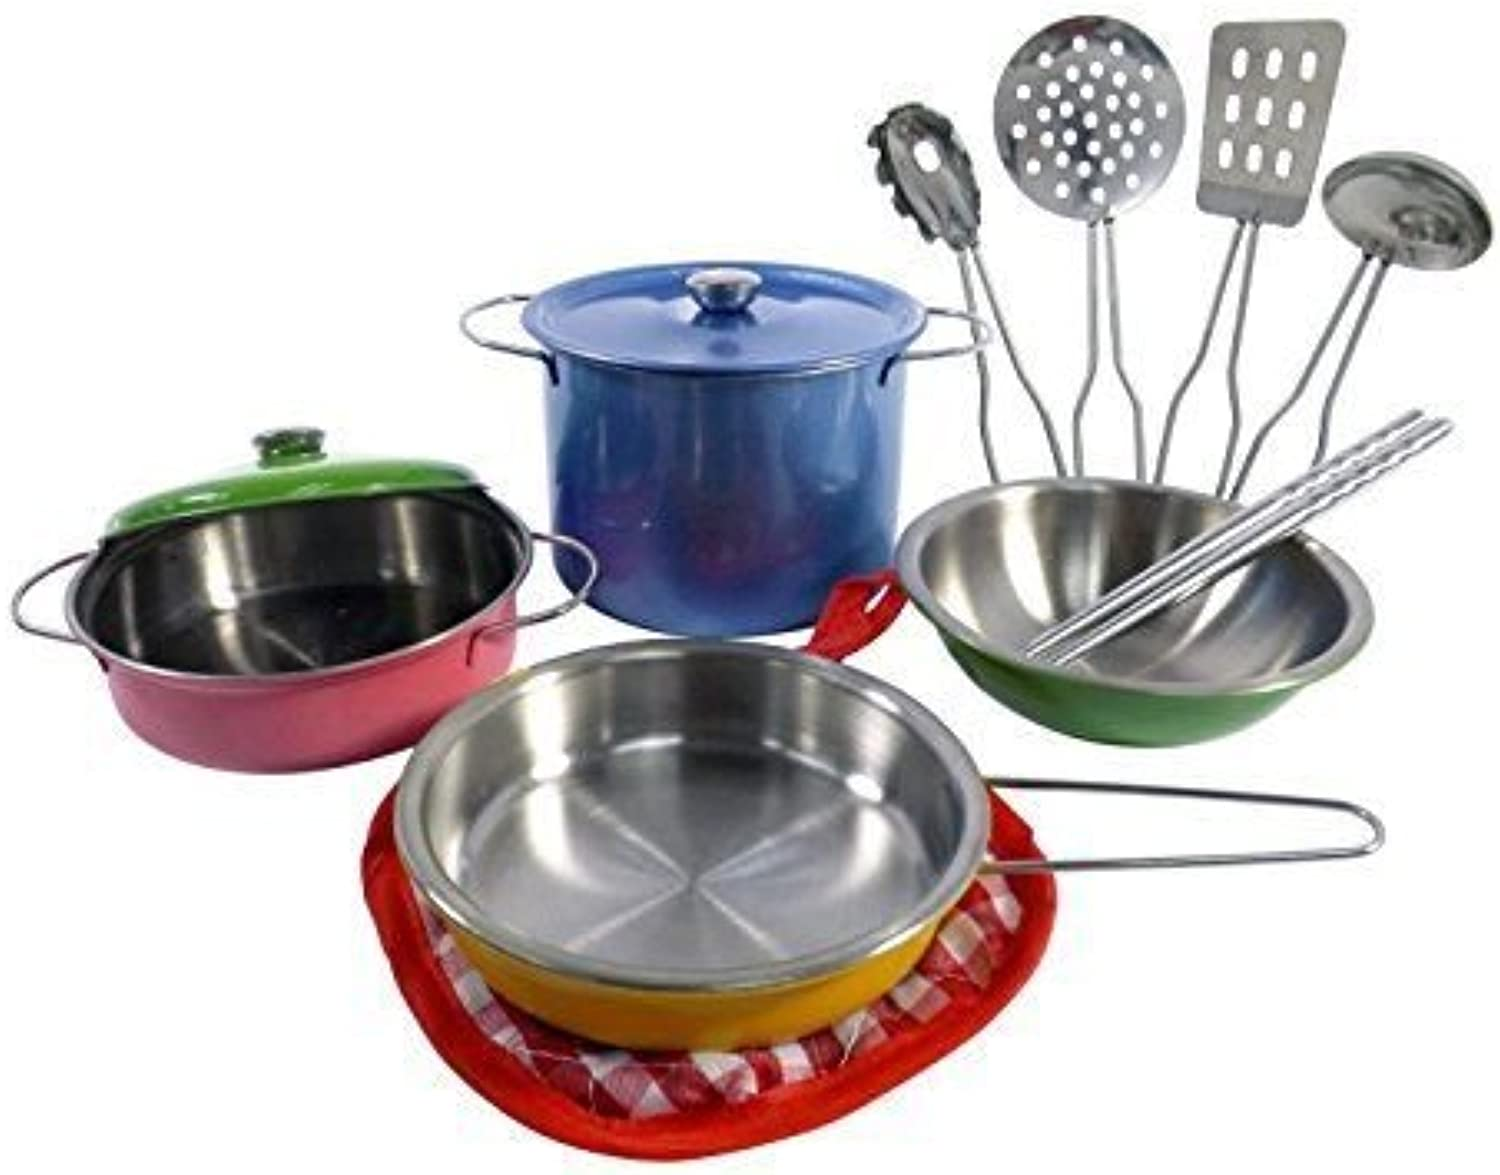 BooTool(TM) colorful Metal Pots and Pans Kitchen Cookware Playset for Kids with Cooking